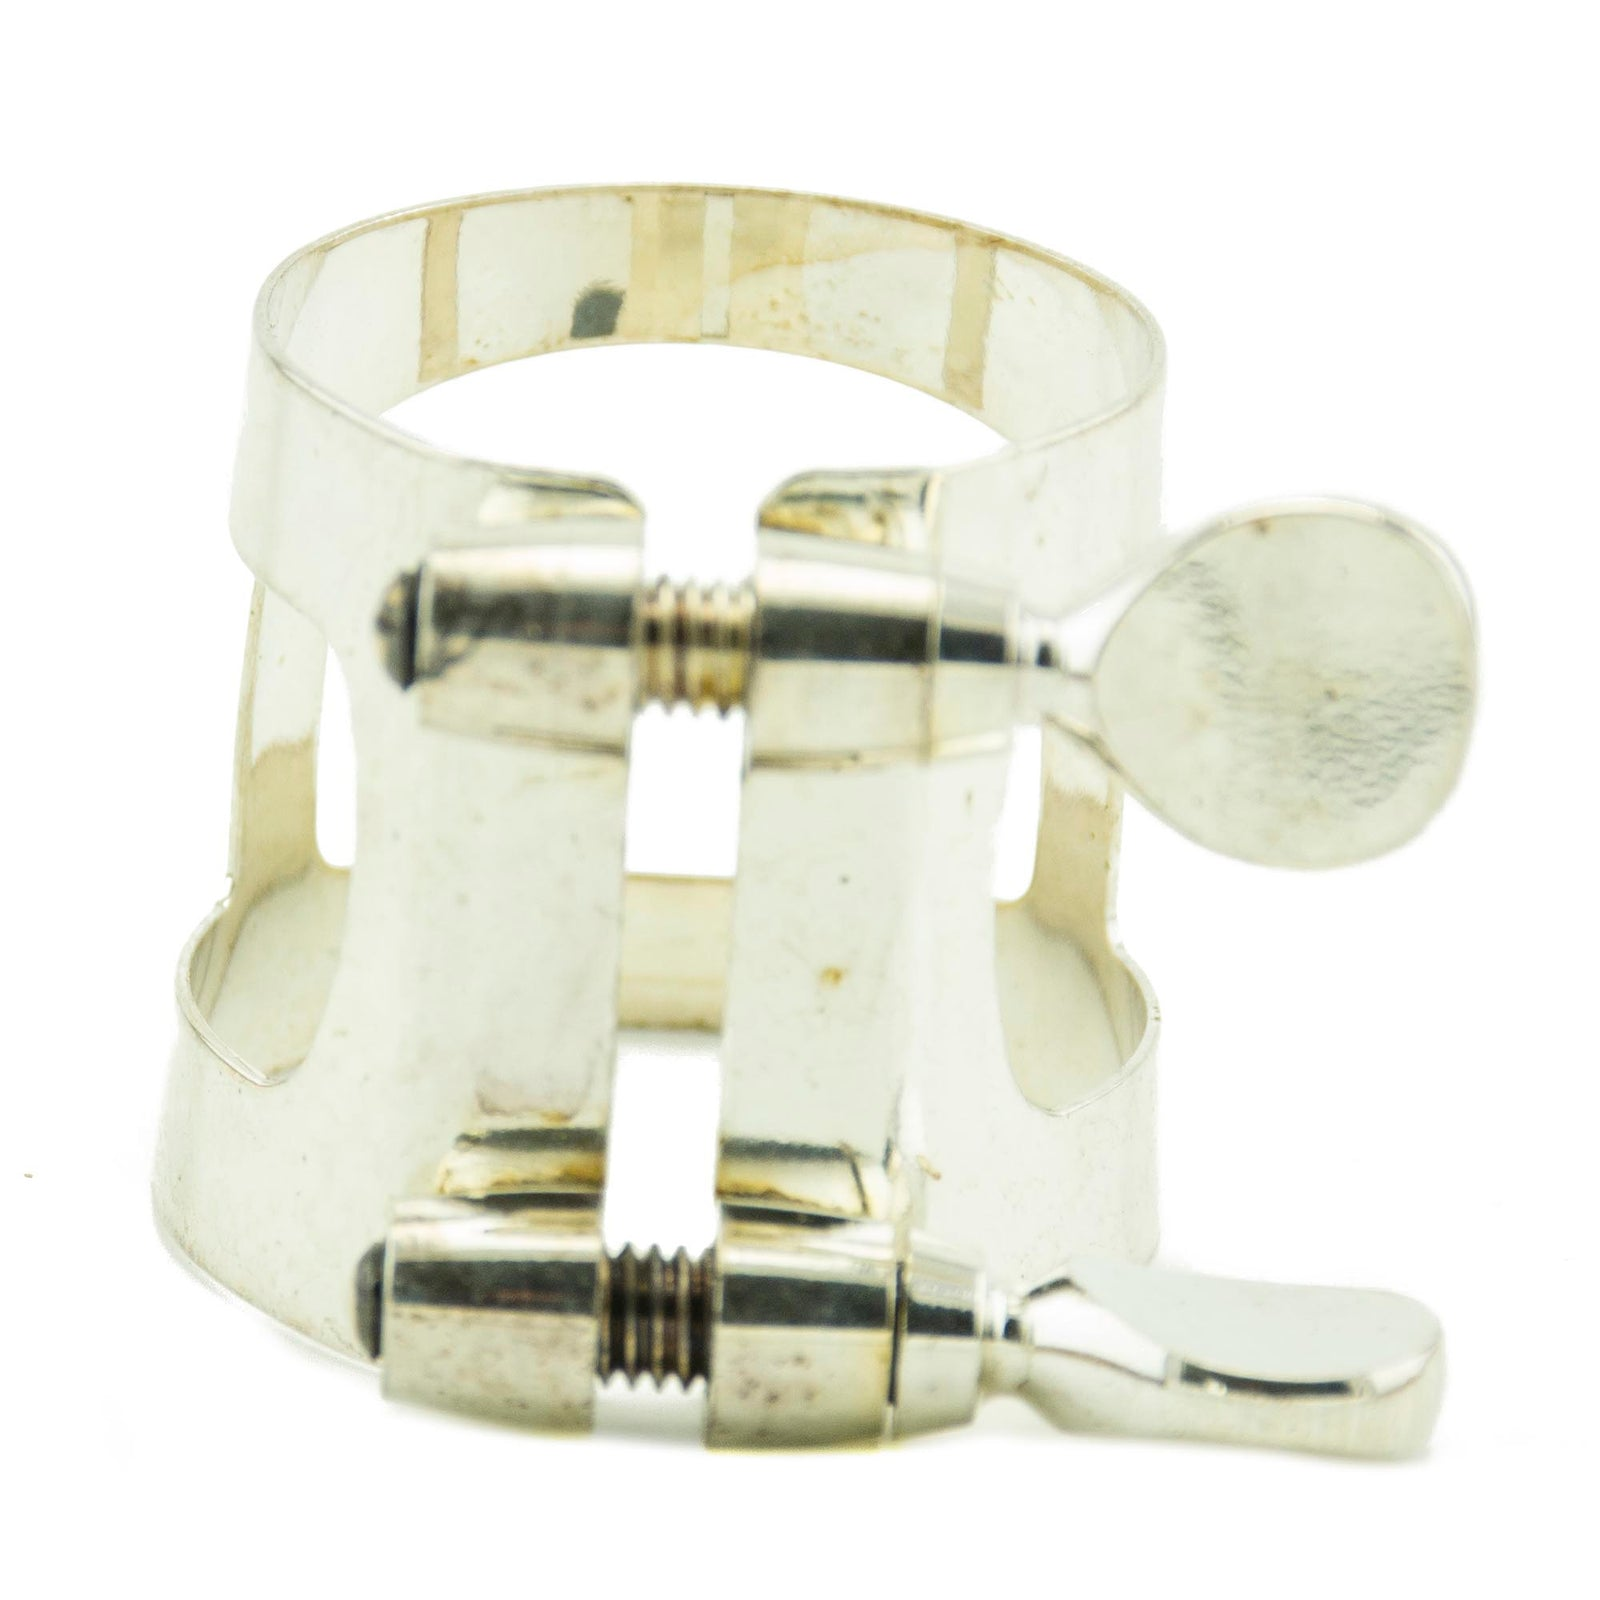 Yamaha - BB Clarinet Ligature - Silver Plated